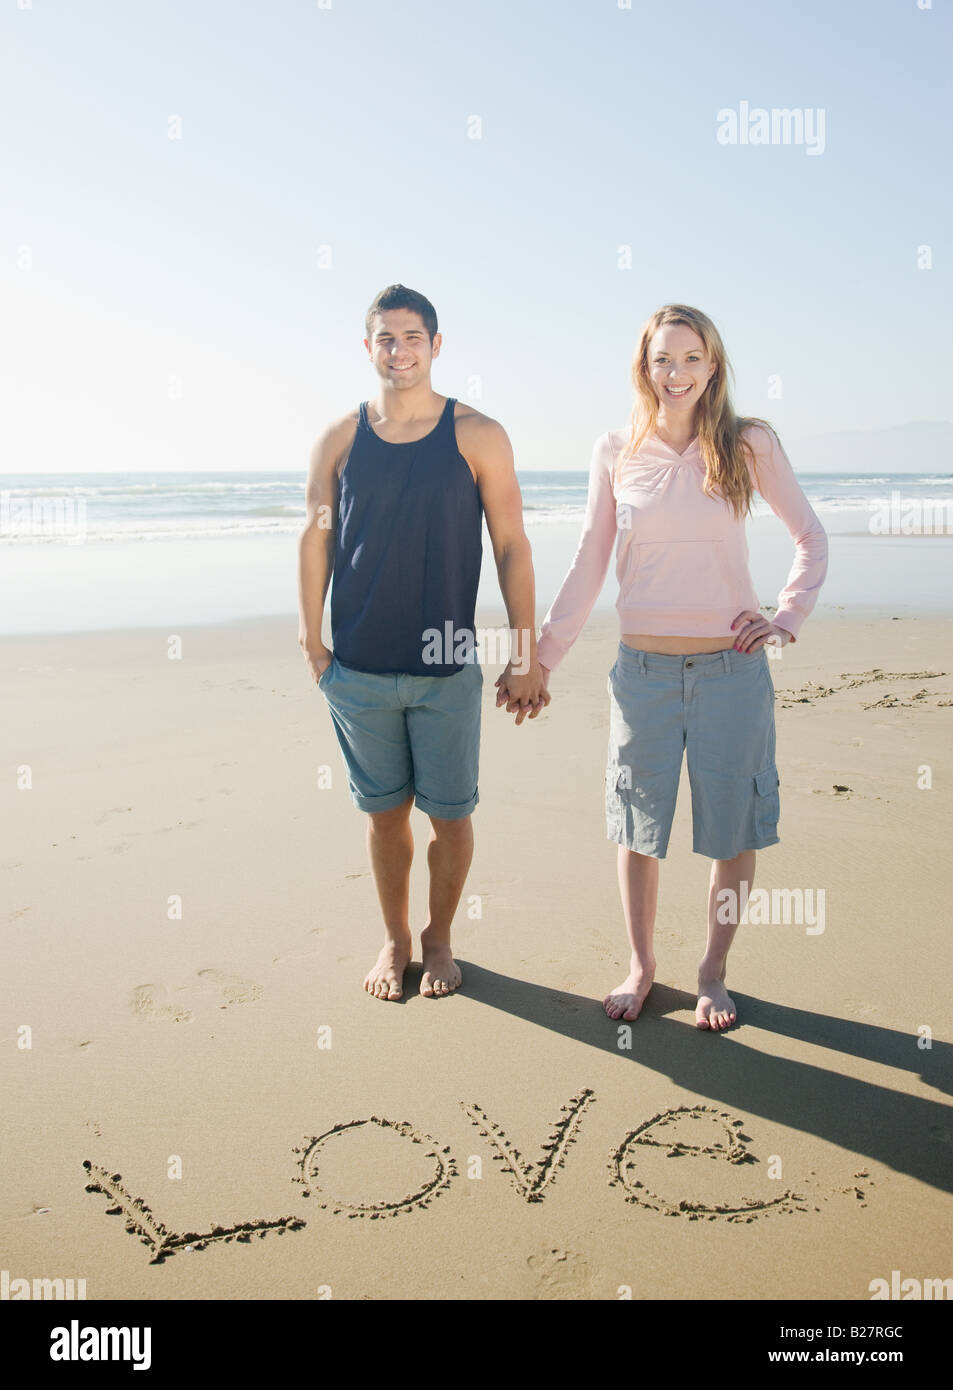 Couple next to Love written in sand Stock Photo